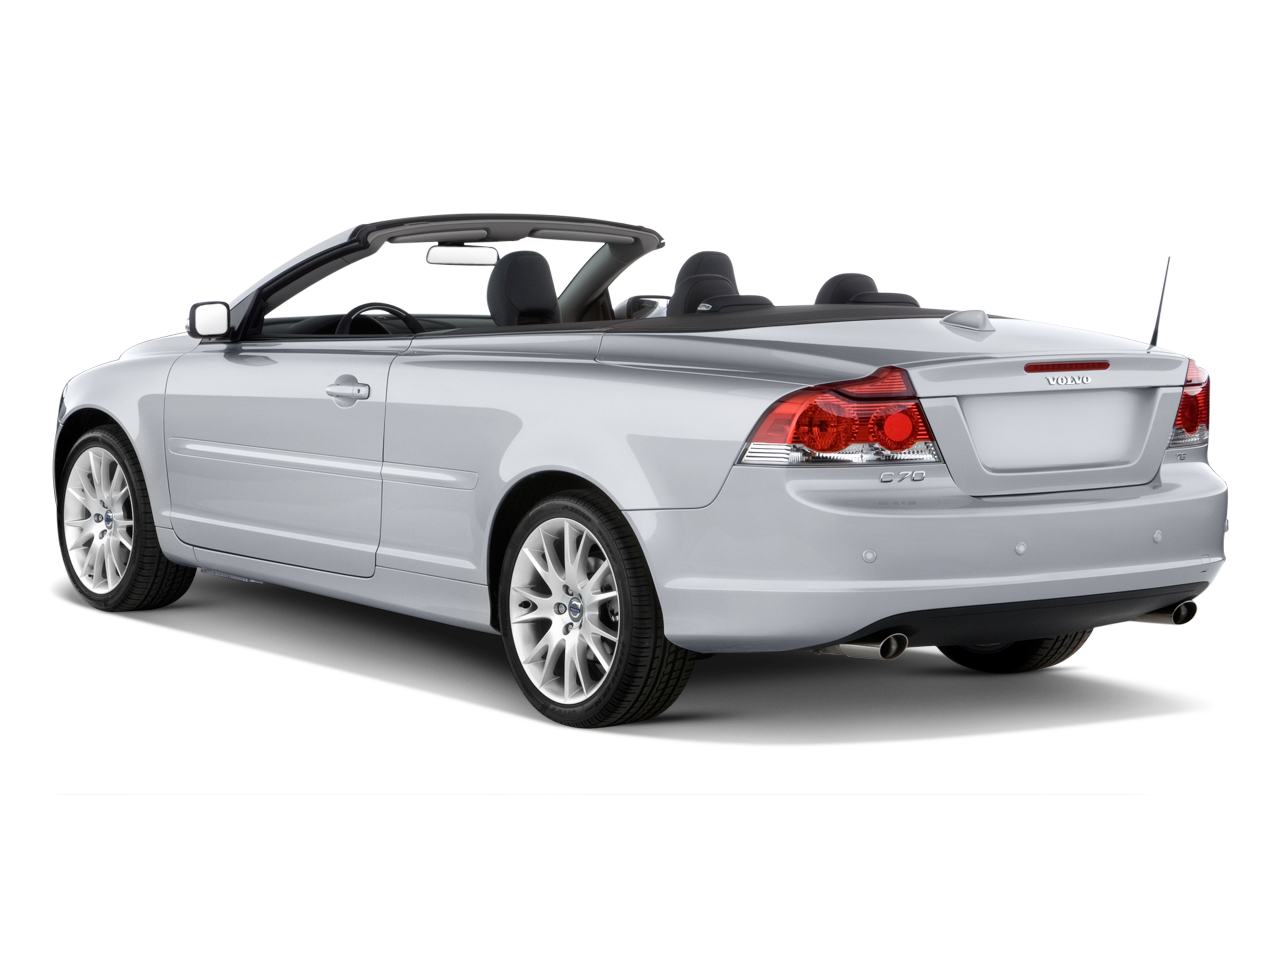 2010 Volvo C70 Will Debut At 2009 Frankfurt Motor Show